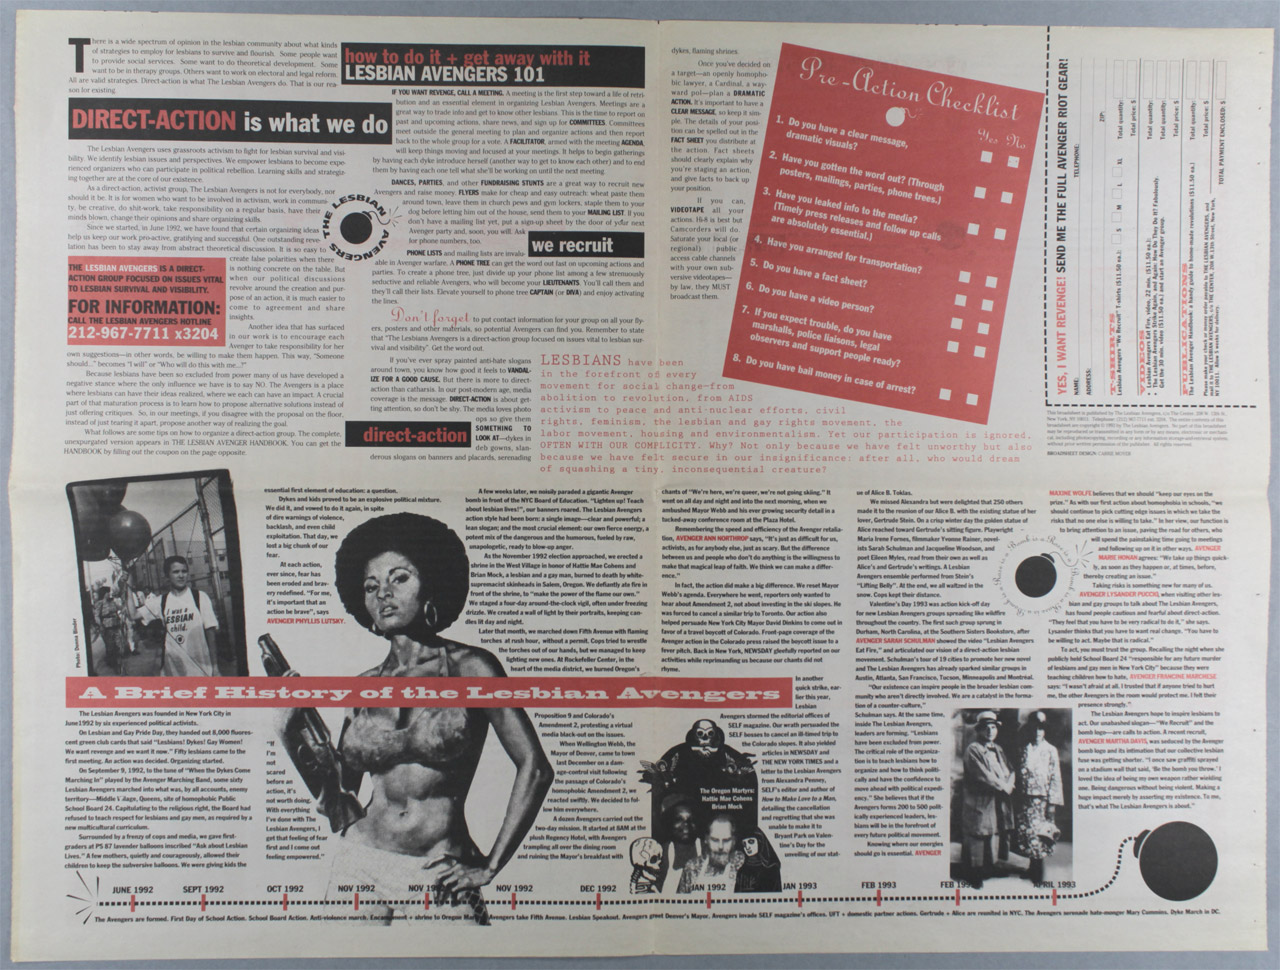 Lesbian Avengers Manifesto and Action Poster (reverse), designed by Carrie Moyer, New York, c. 1992-1994